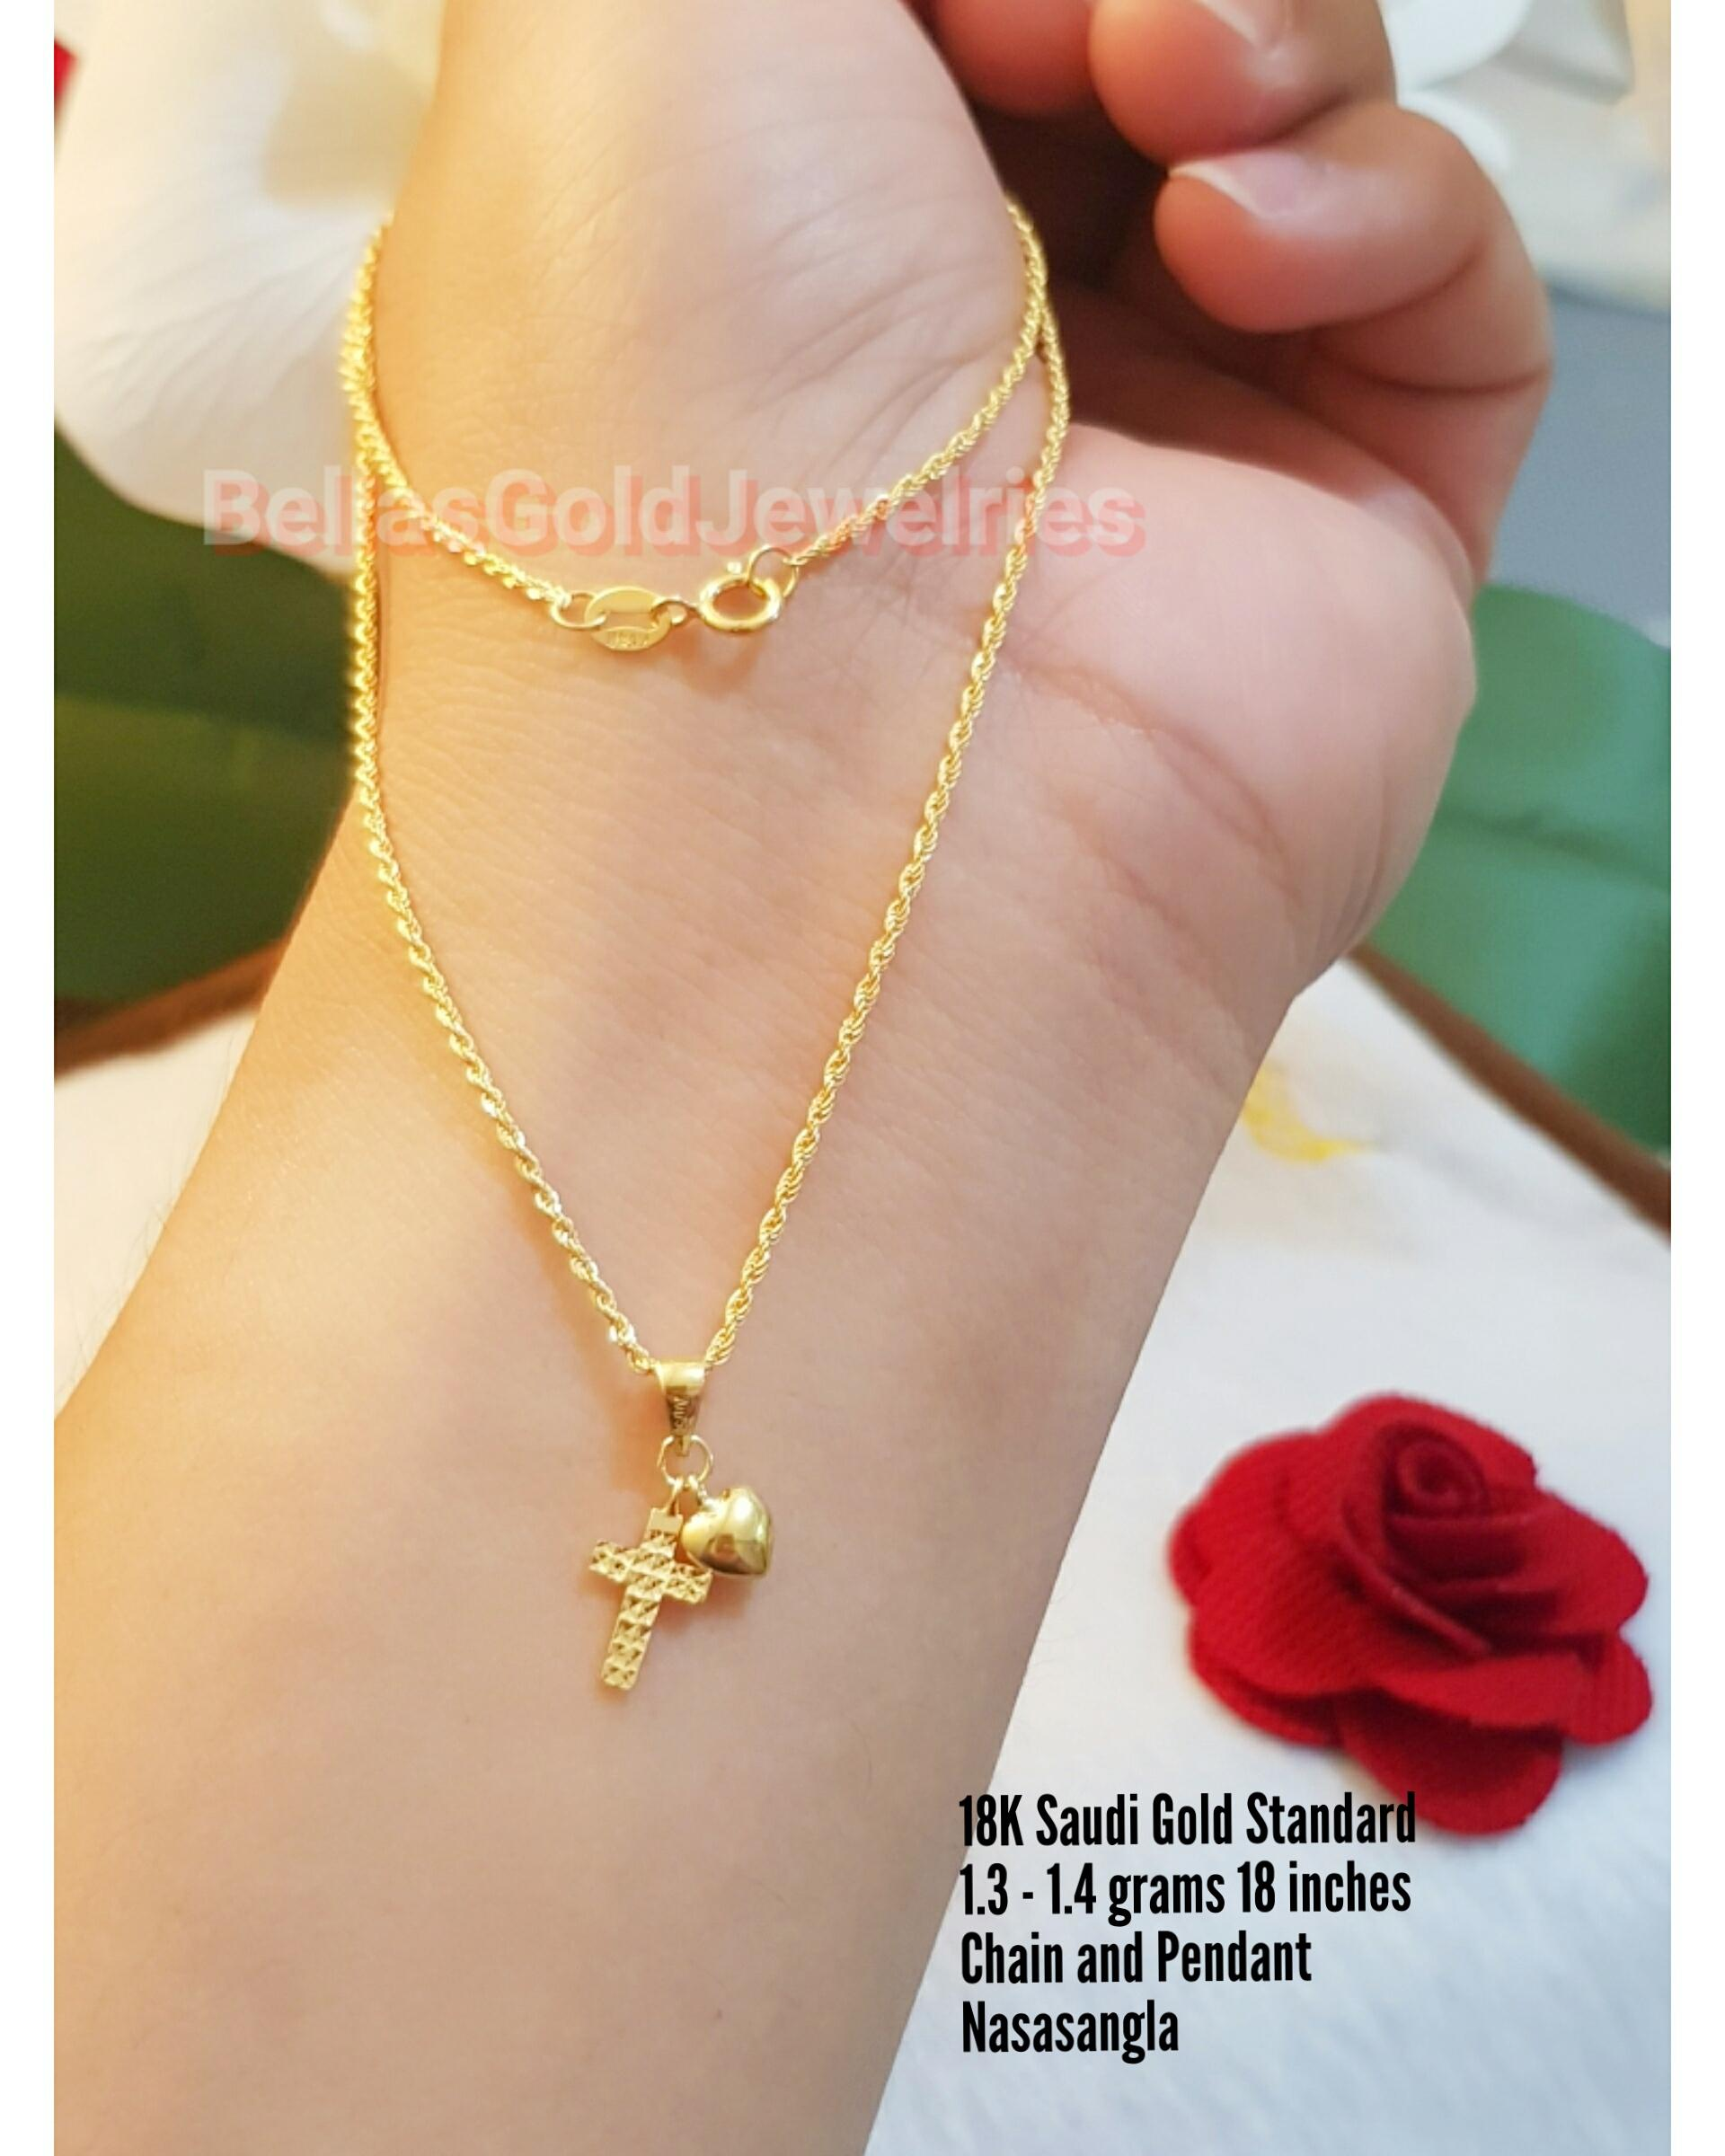 8127fa436c2 Gold Jewelry for sale - Pure Gold Jewelry online brands